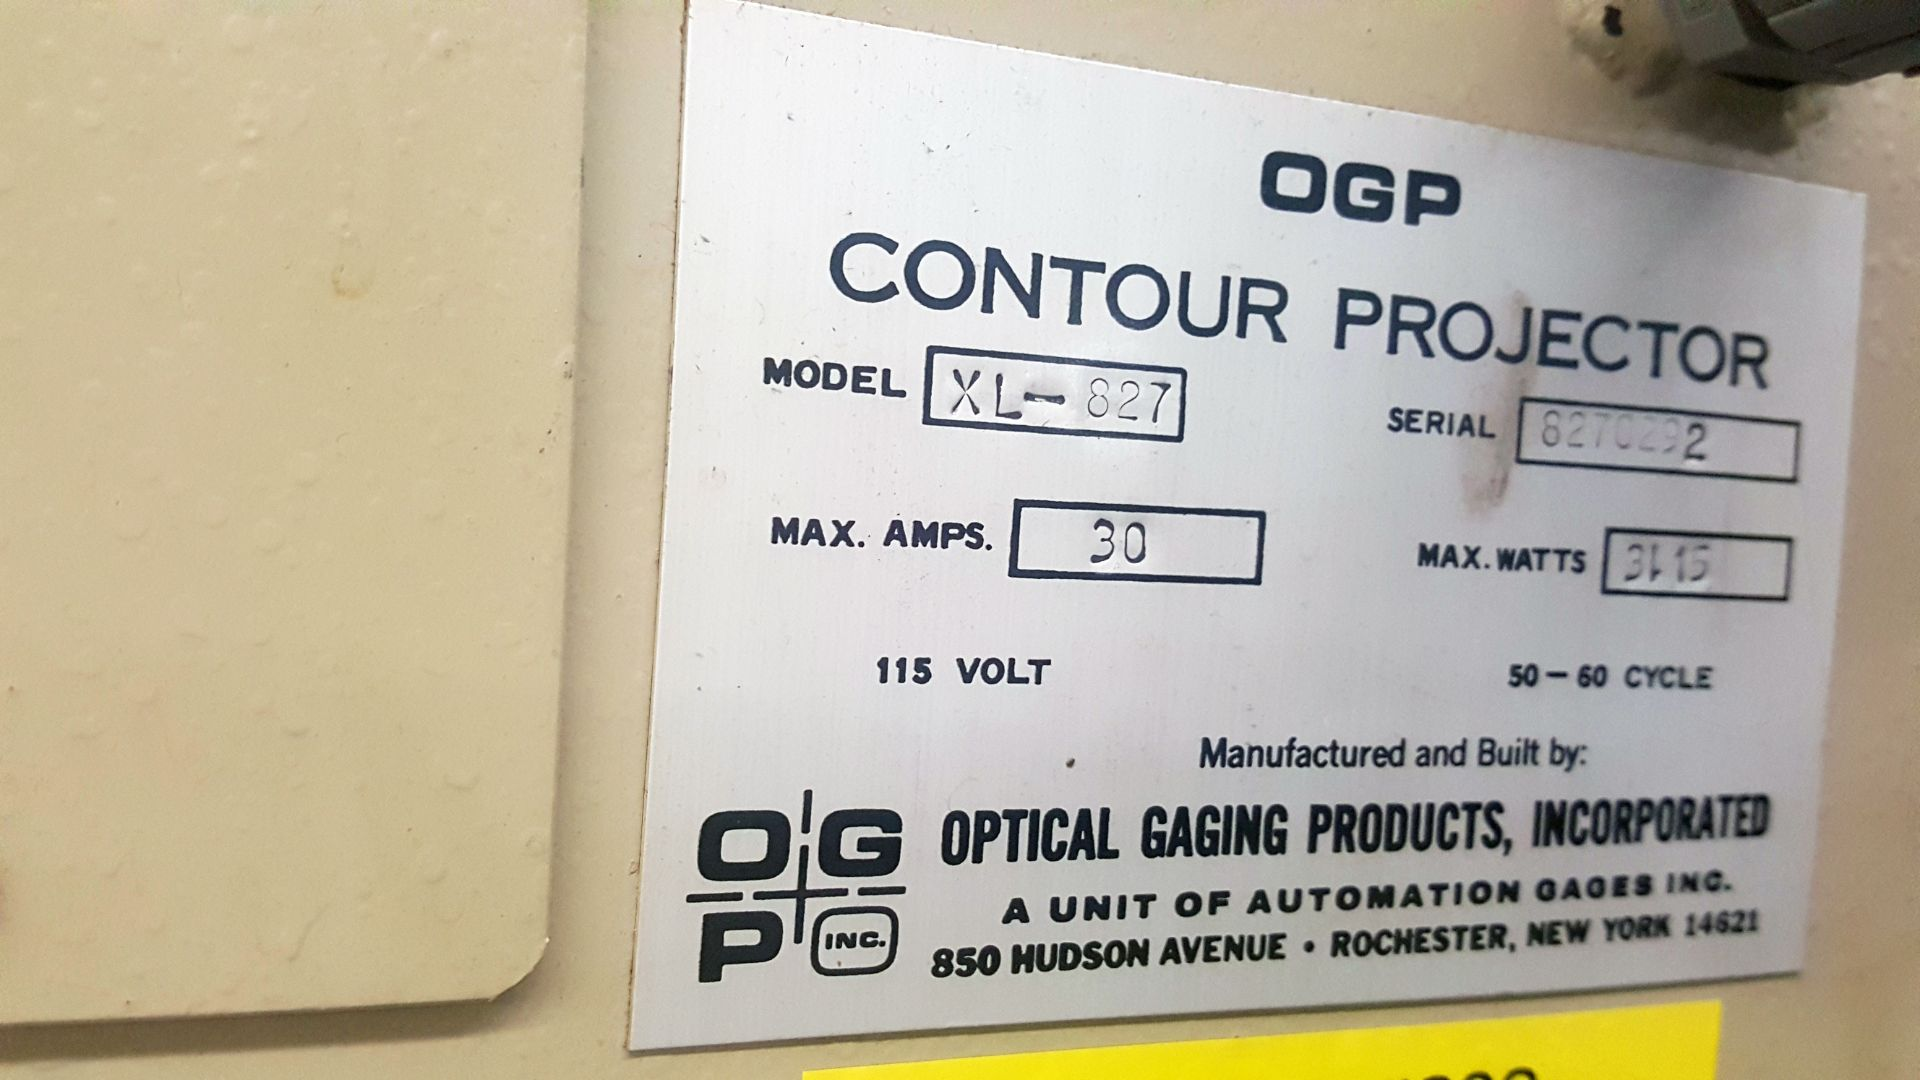 "OGP 30"" Optical Comparator Projector, Model IXL-827, XL30S, S/N 8270292, under power - Image 7 of 8"